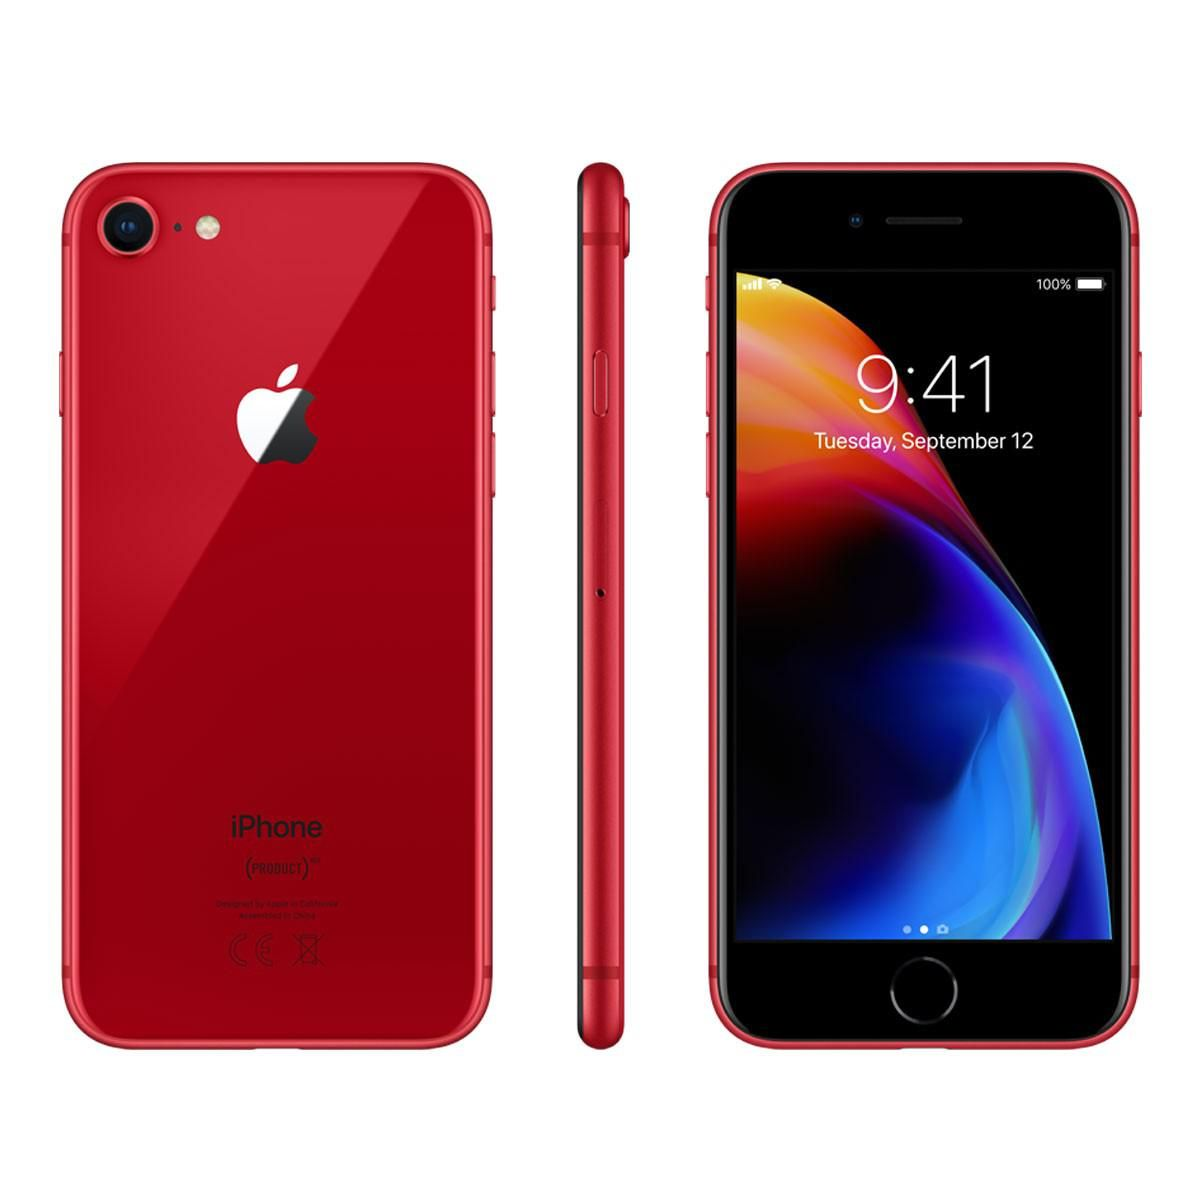 Iphone 8 64gb Product Red T Mobile Iphone Apple Iphone T Mobile Phones